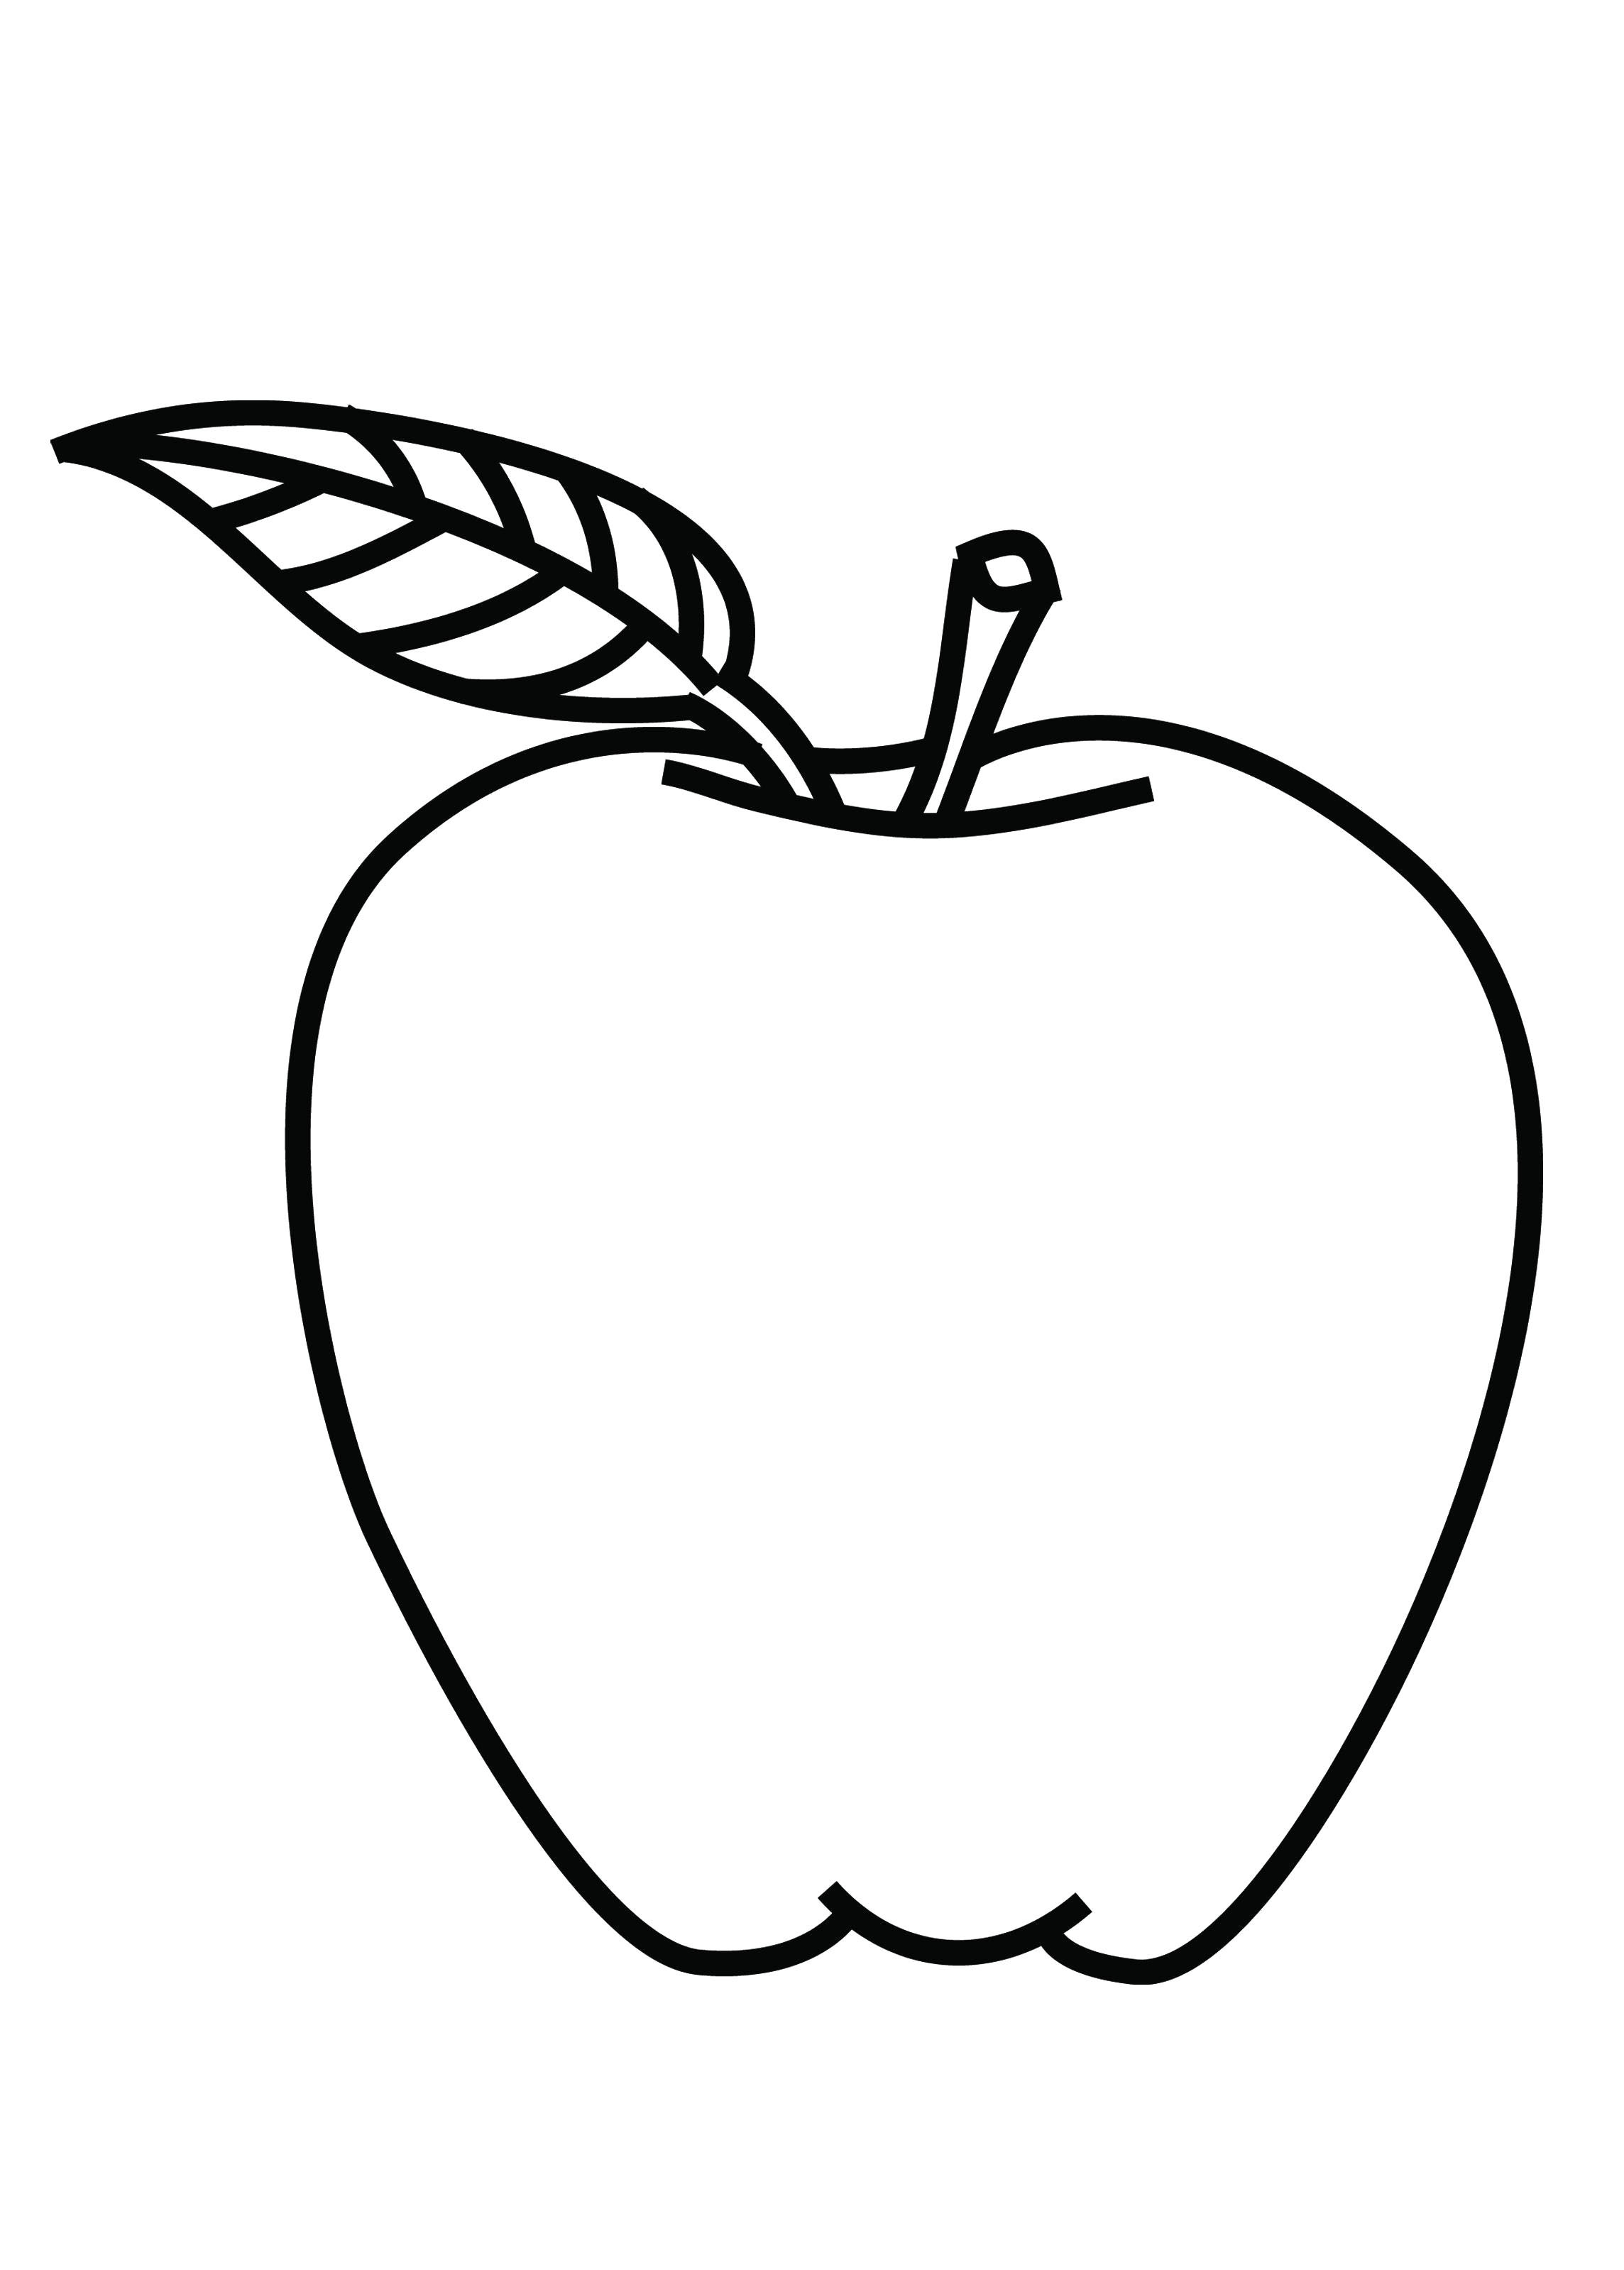 coloring picture of an apple apple coloring page wecoloring of an picture coloring apple